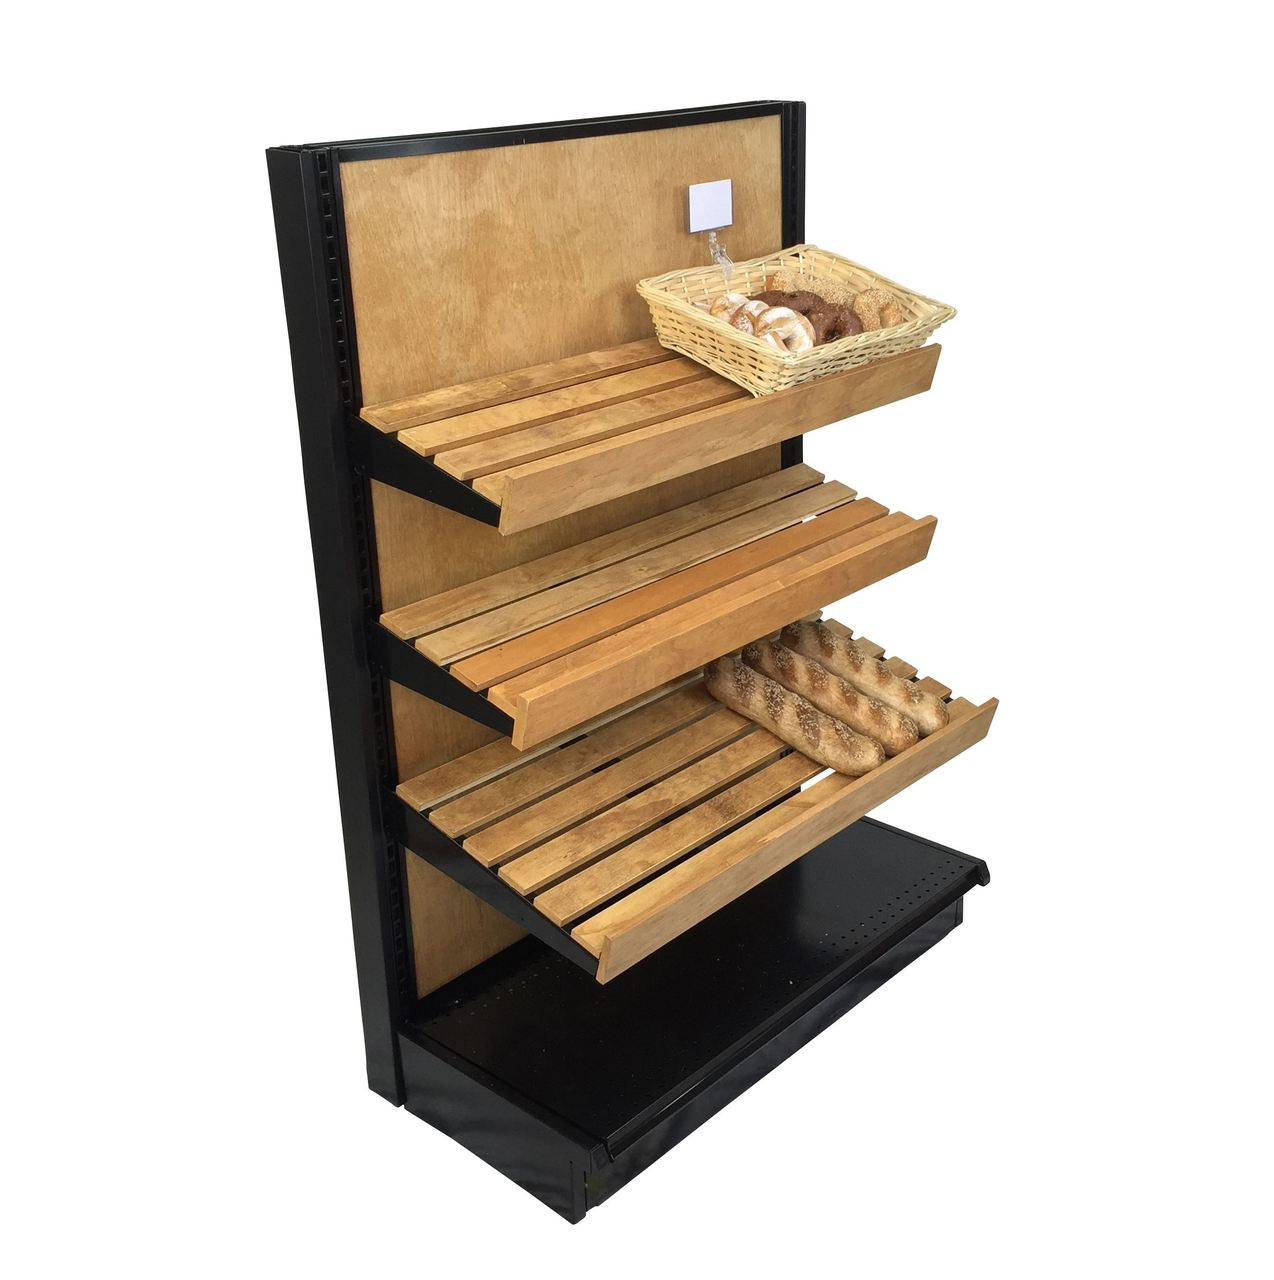 Bread Display Shelves | Wood Gondola End Cap | DGS Retail